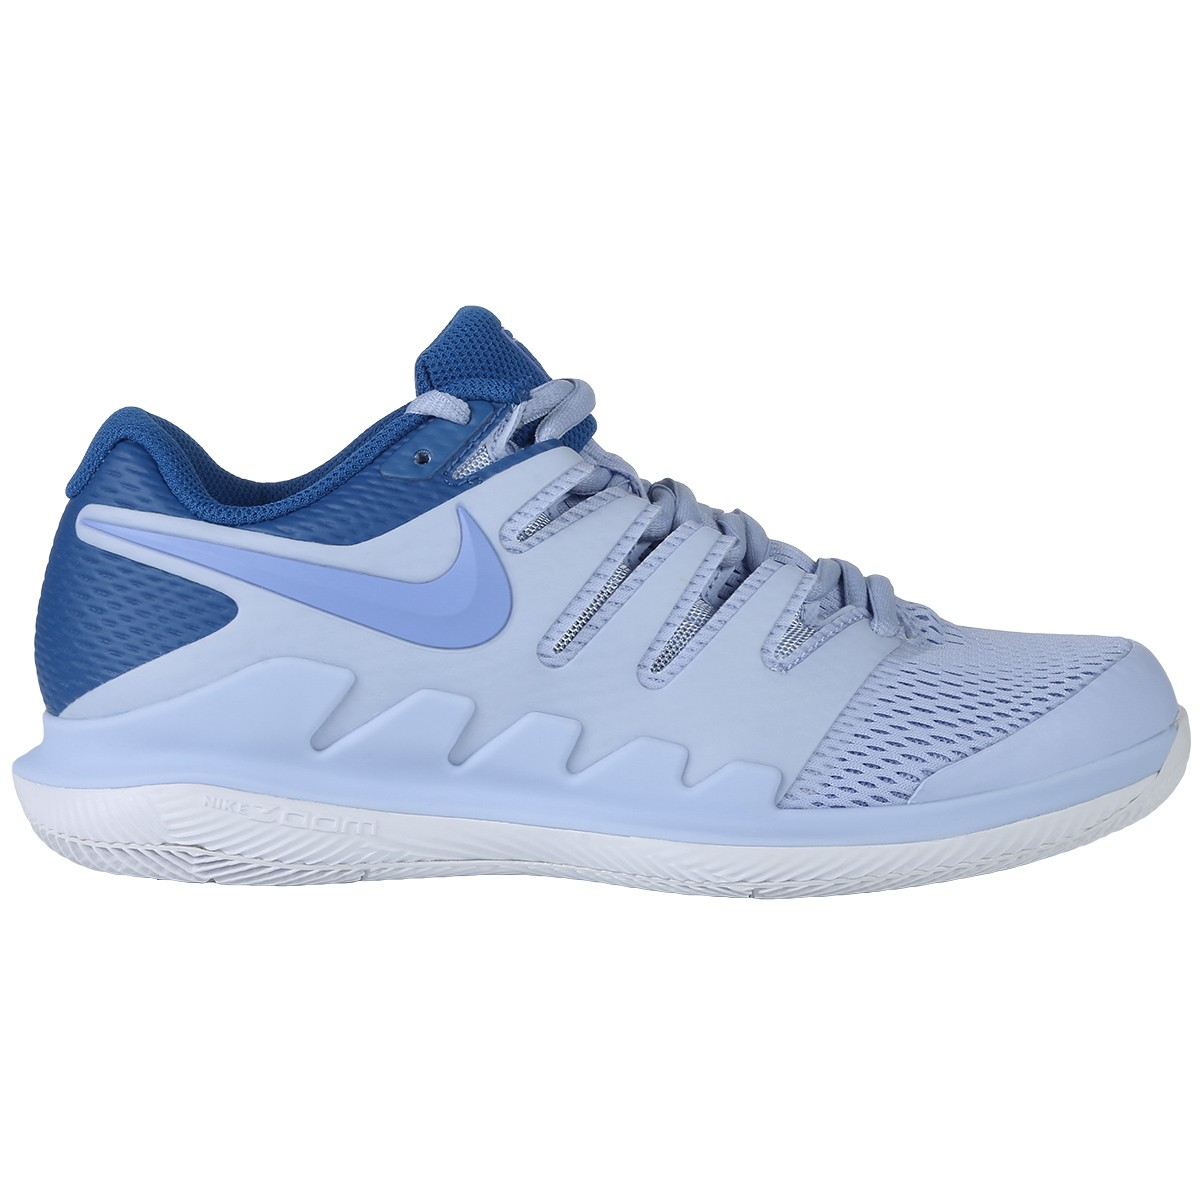 41b1fcce6 ZAPATILLAS NIKE MUJER AIR ZOOM VAPOR 10 TODAS SUPERFICIES +